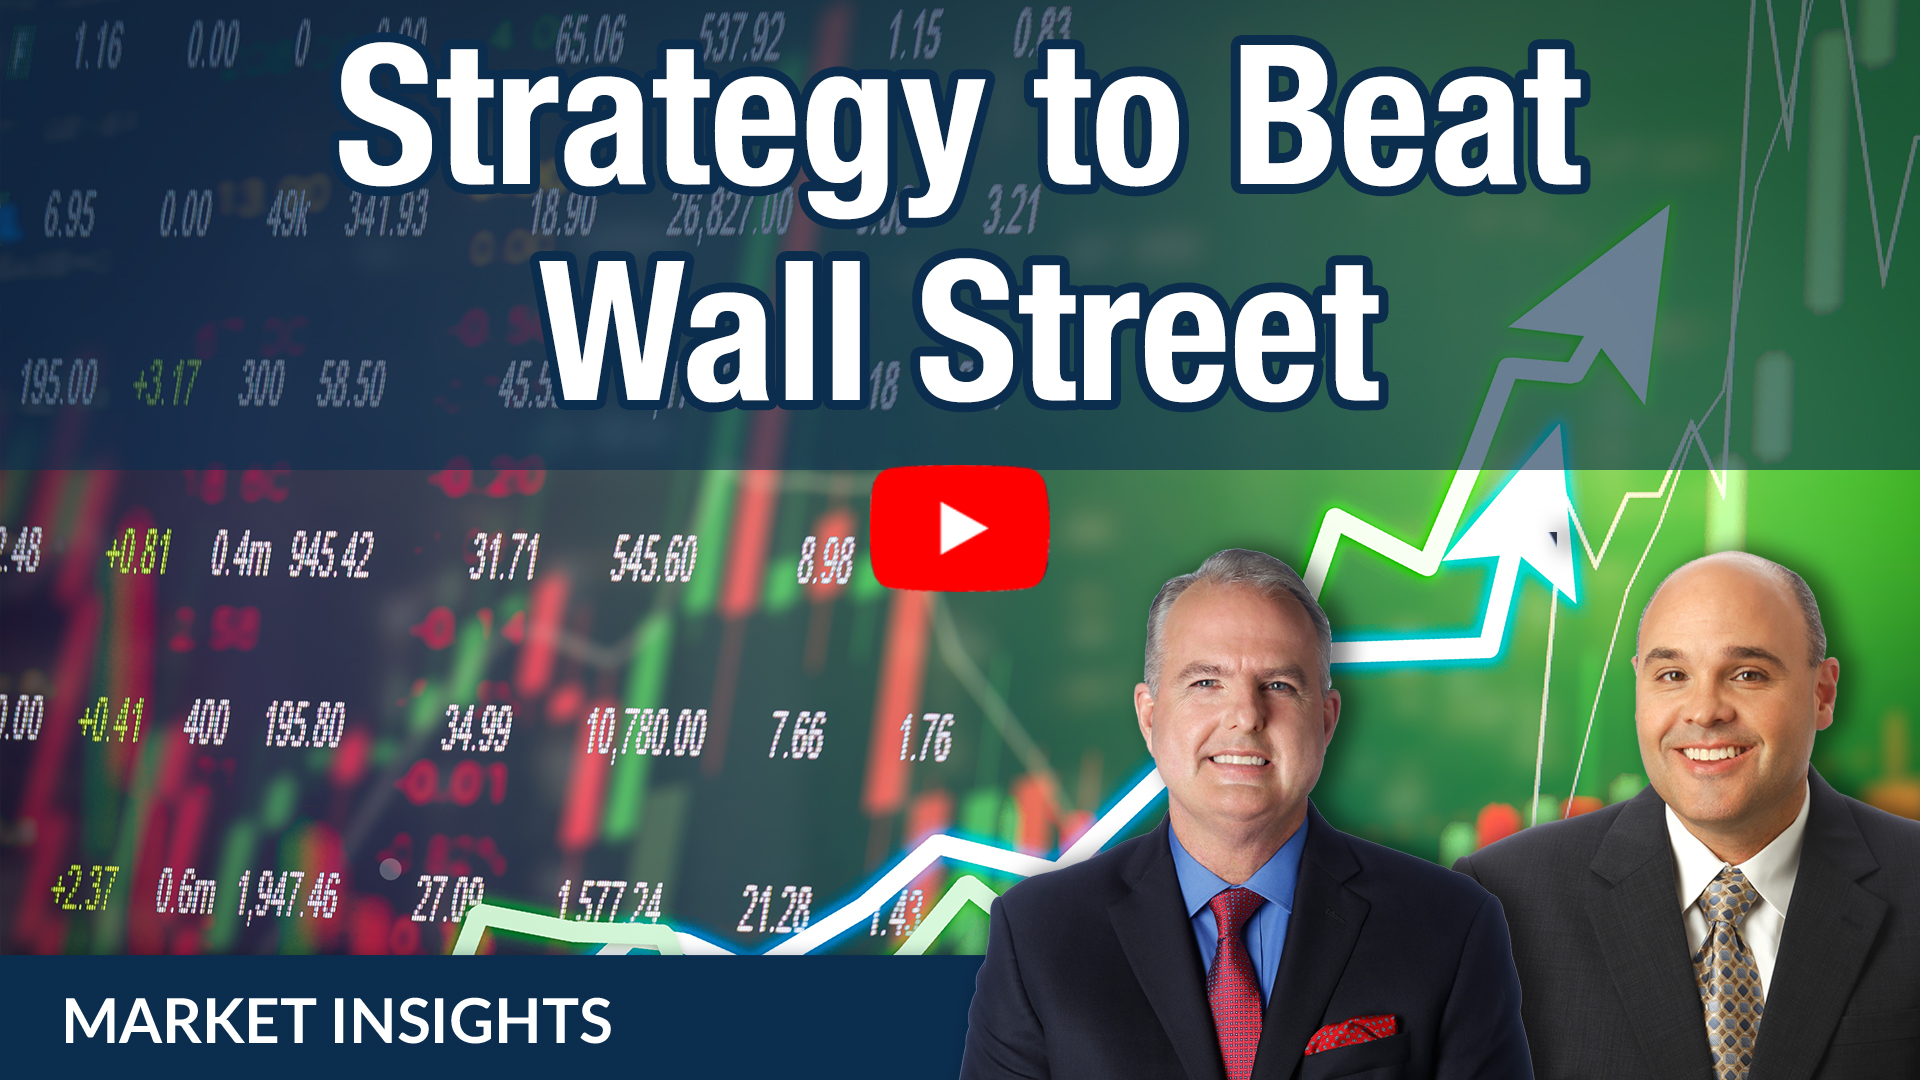 Wall Street wishes it had this powerful trading system … and soon, Brian and Jeff will give their subscribers access to it.